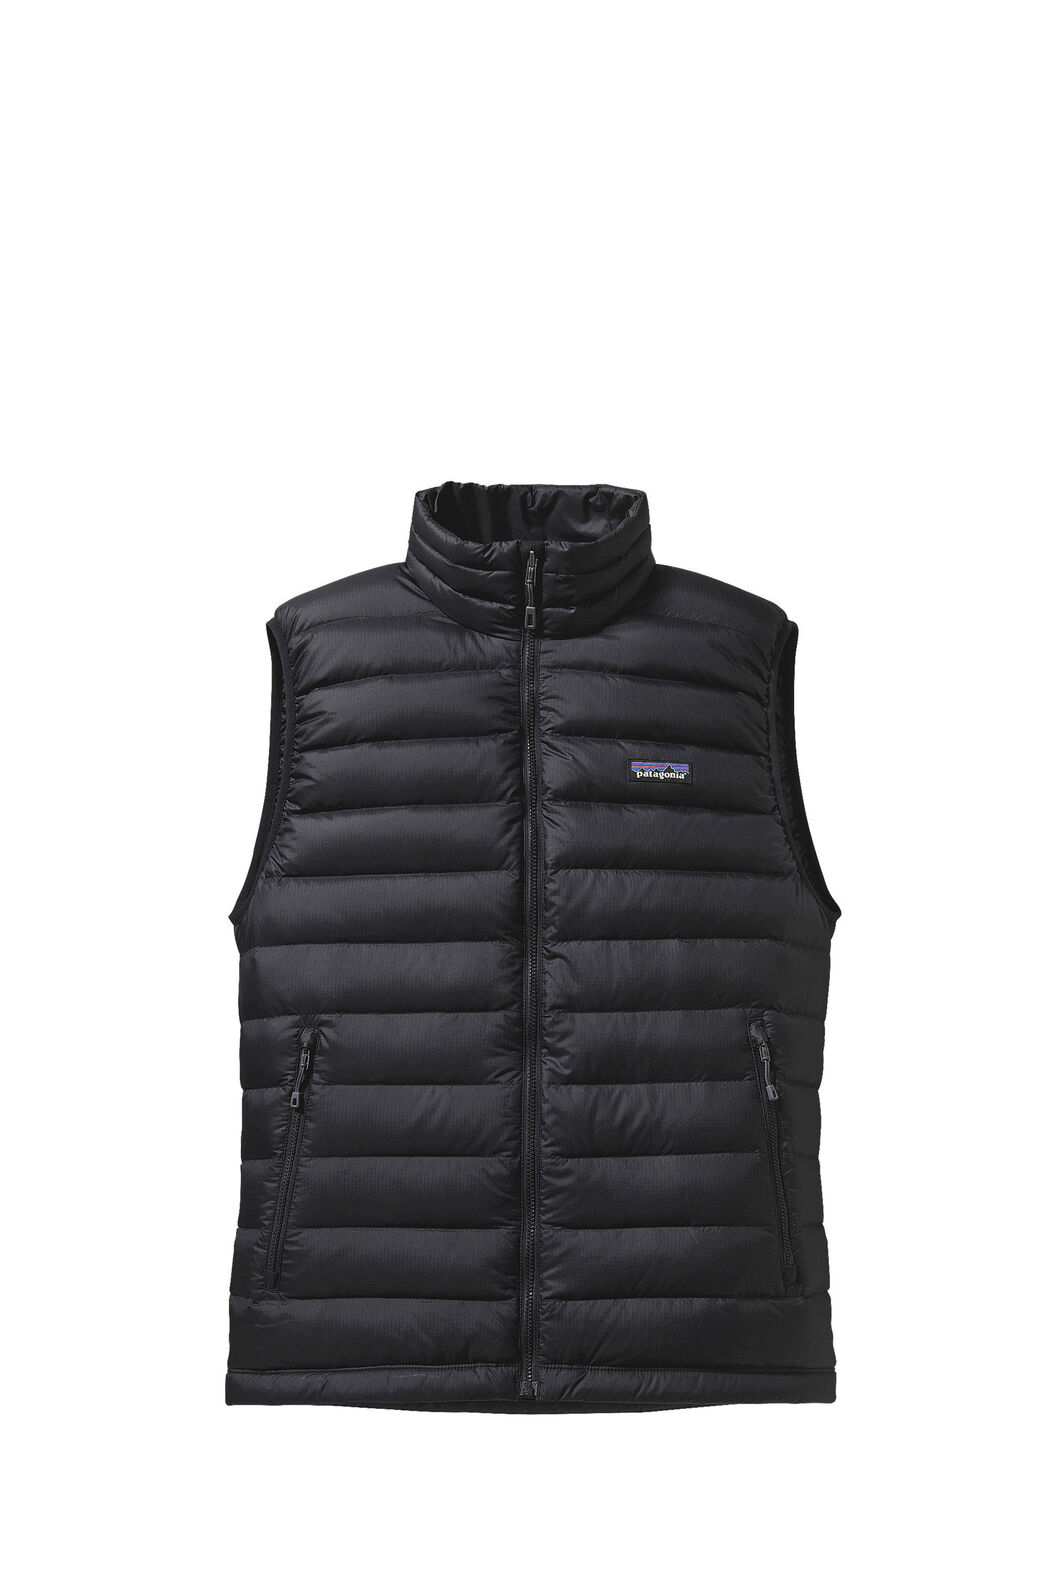 Patagonia Men's Down Sweater Vest, Black, hi-res